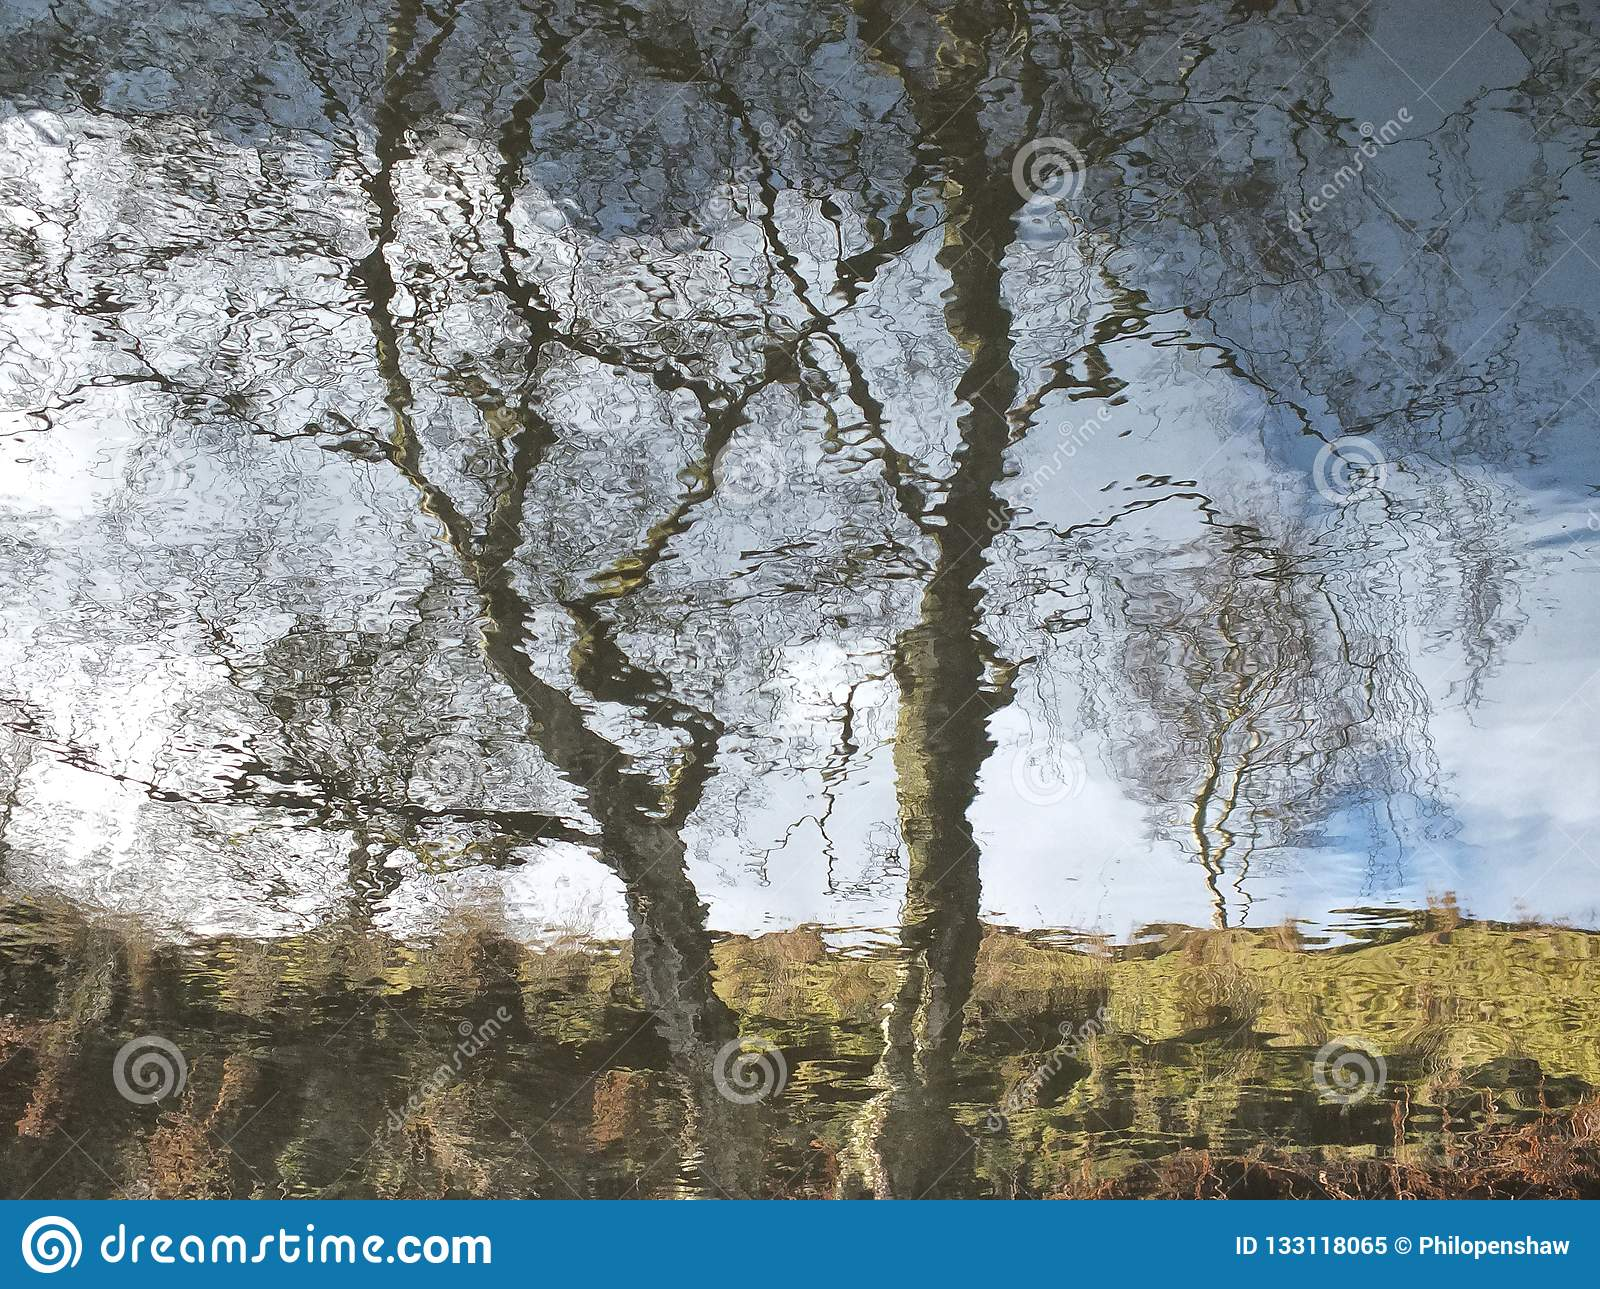 Reflection of a tree and hillside blurred by rippling water with blue cloudy sky